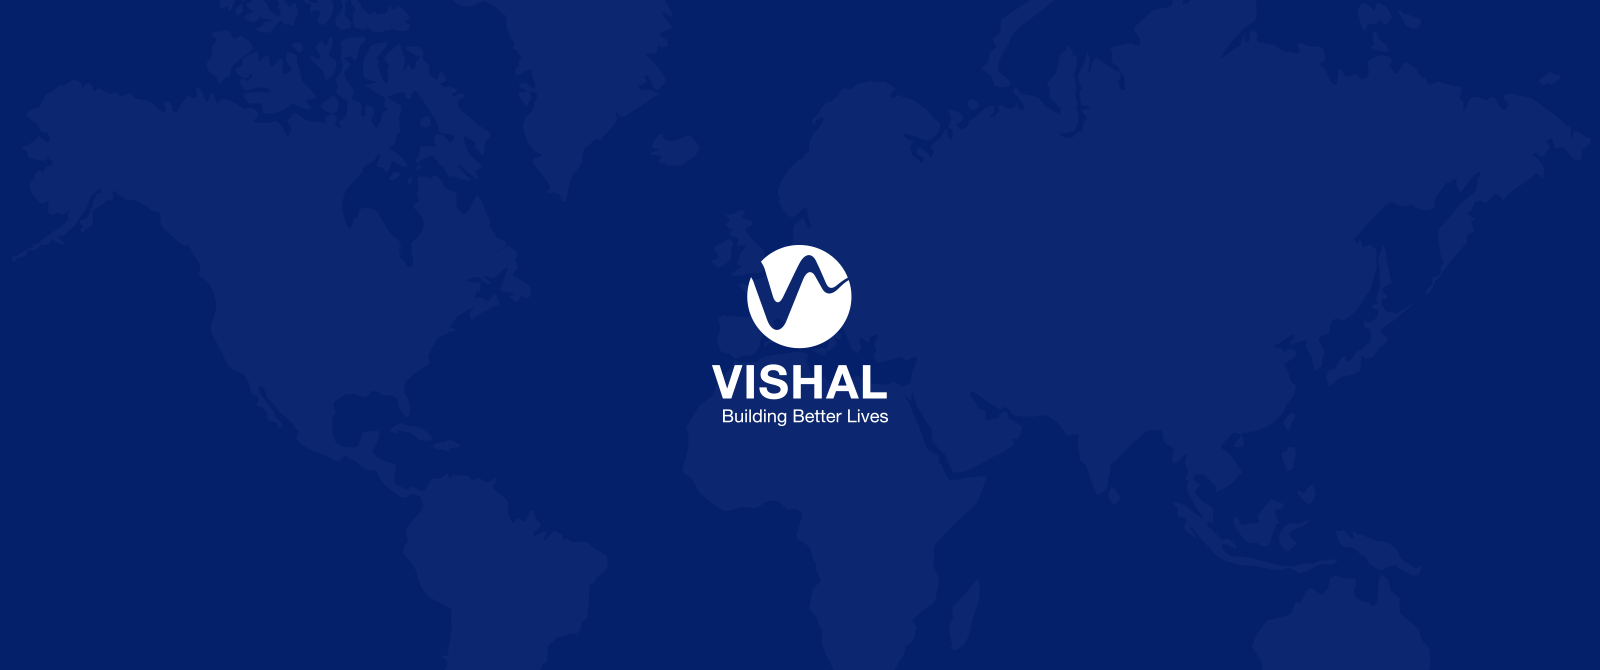 Vishal Group Supported The Government During The Covid-19 Lockdown